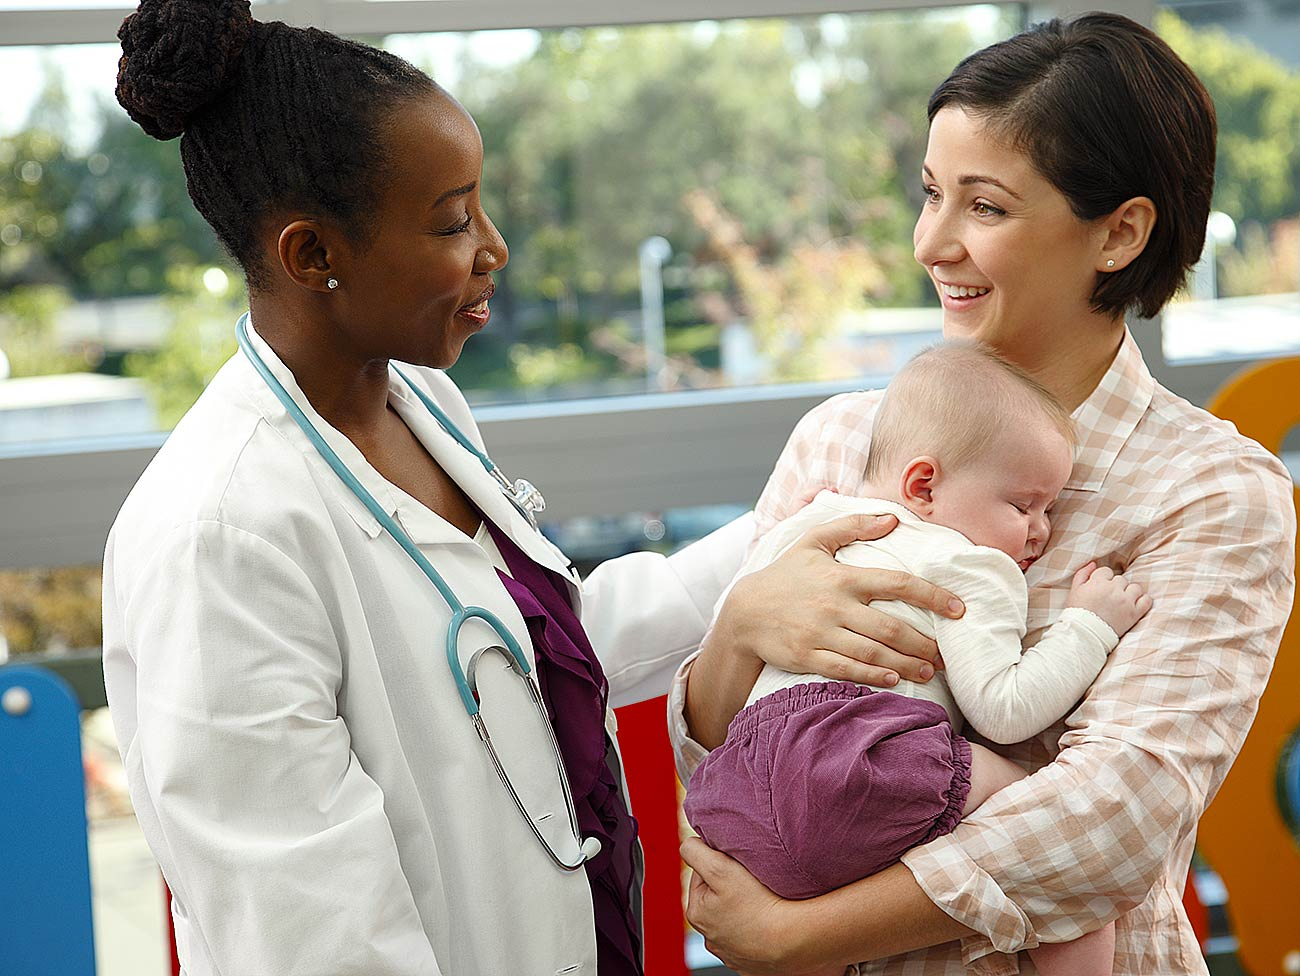 kaiser-permanente-san-francisco-citys-first-hospital-public-cord-blood-donation-collection_1300x976